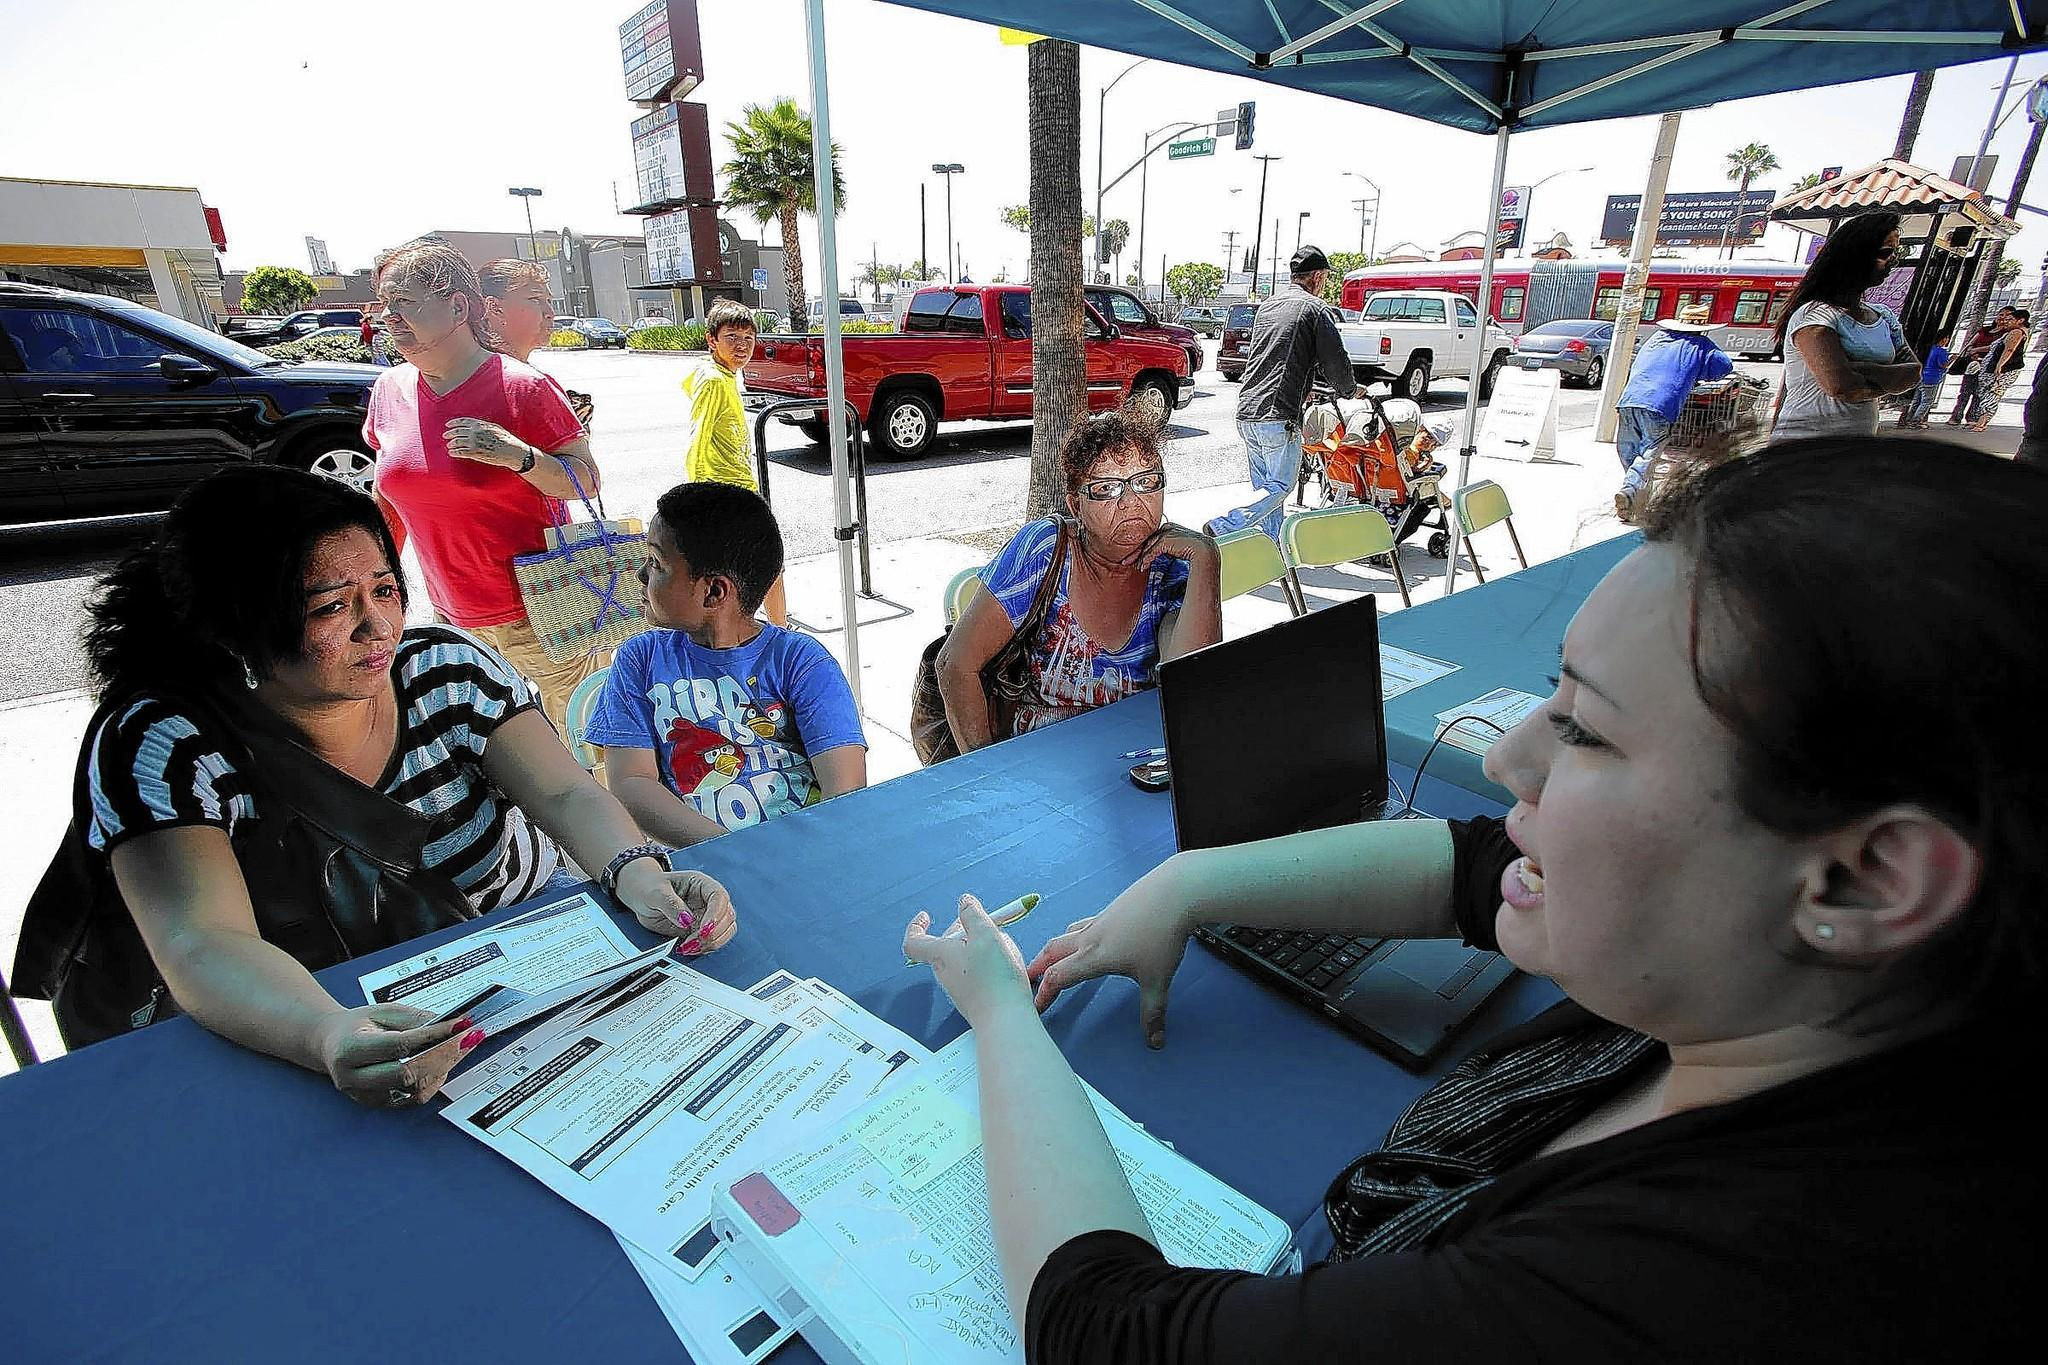 As of Thursday, Covered California said 70,000 people had finished enrolling since March 31 and overall it expects to exceed 1.3 million health plan customers. Above, a family in the City of Commerce gets information about Obamacare on Tuesday.